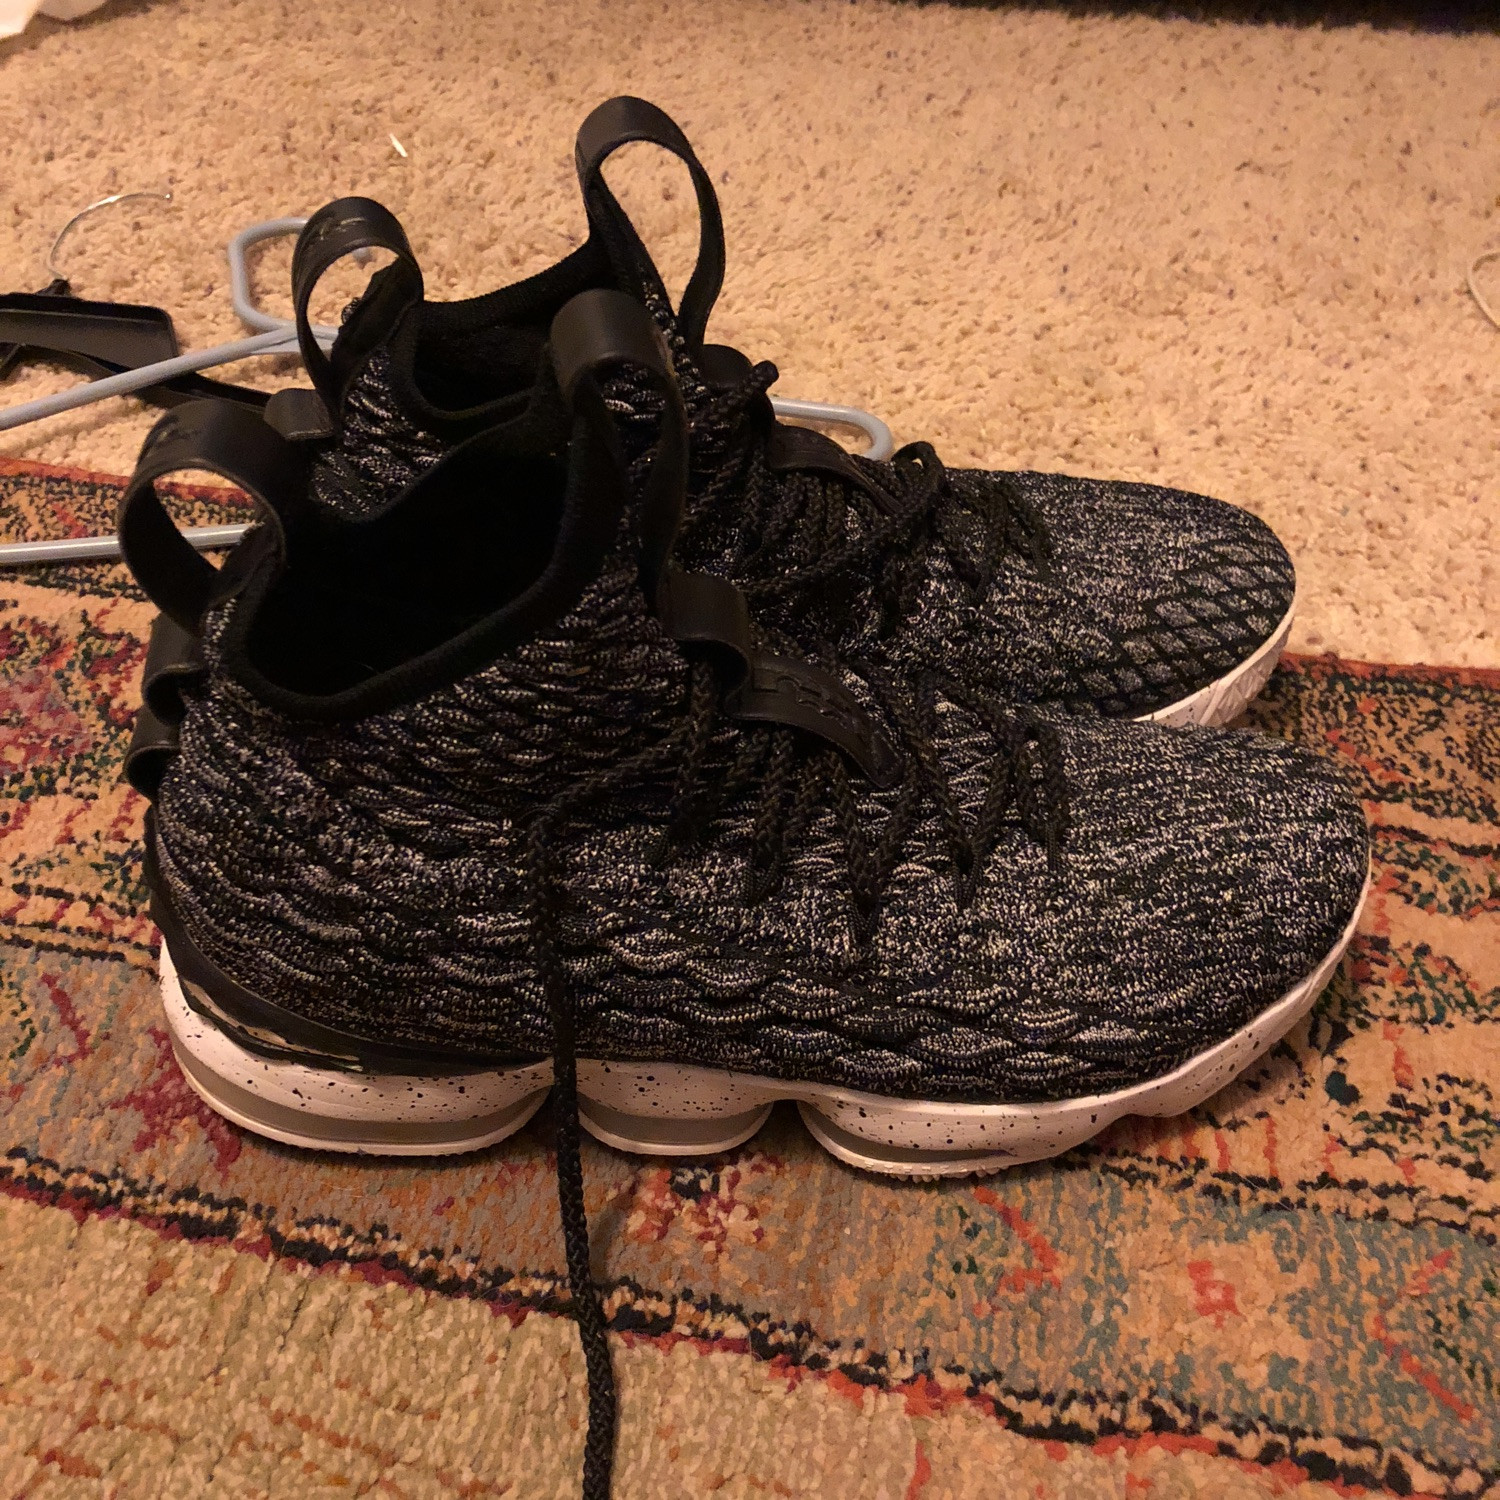 reputable site 373c6 c463a Lebron 15 Ashes